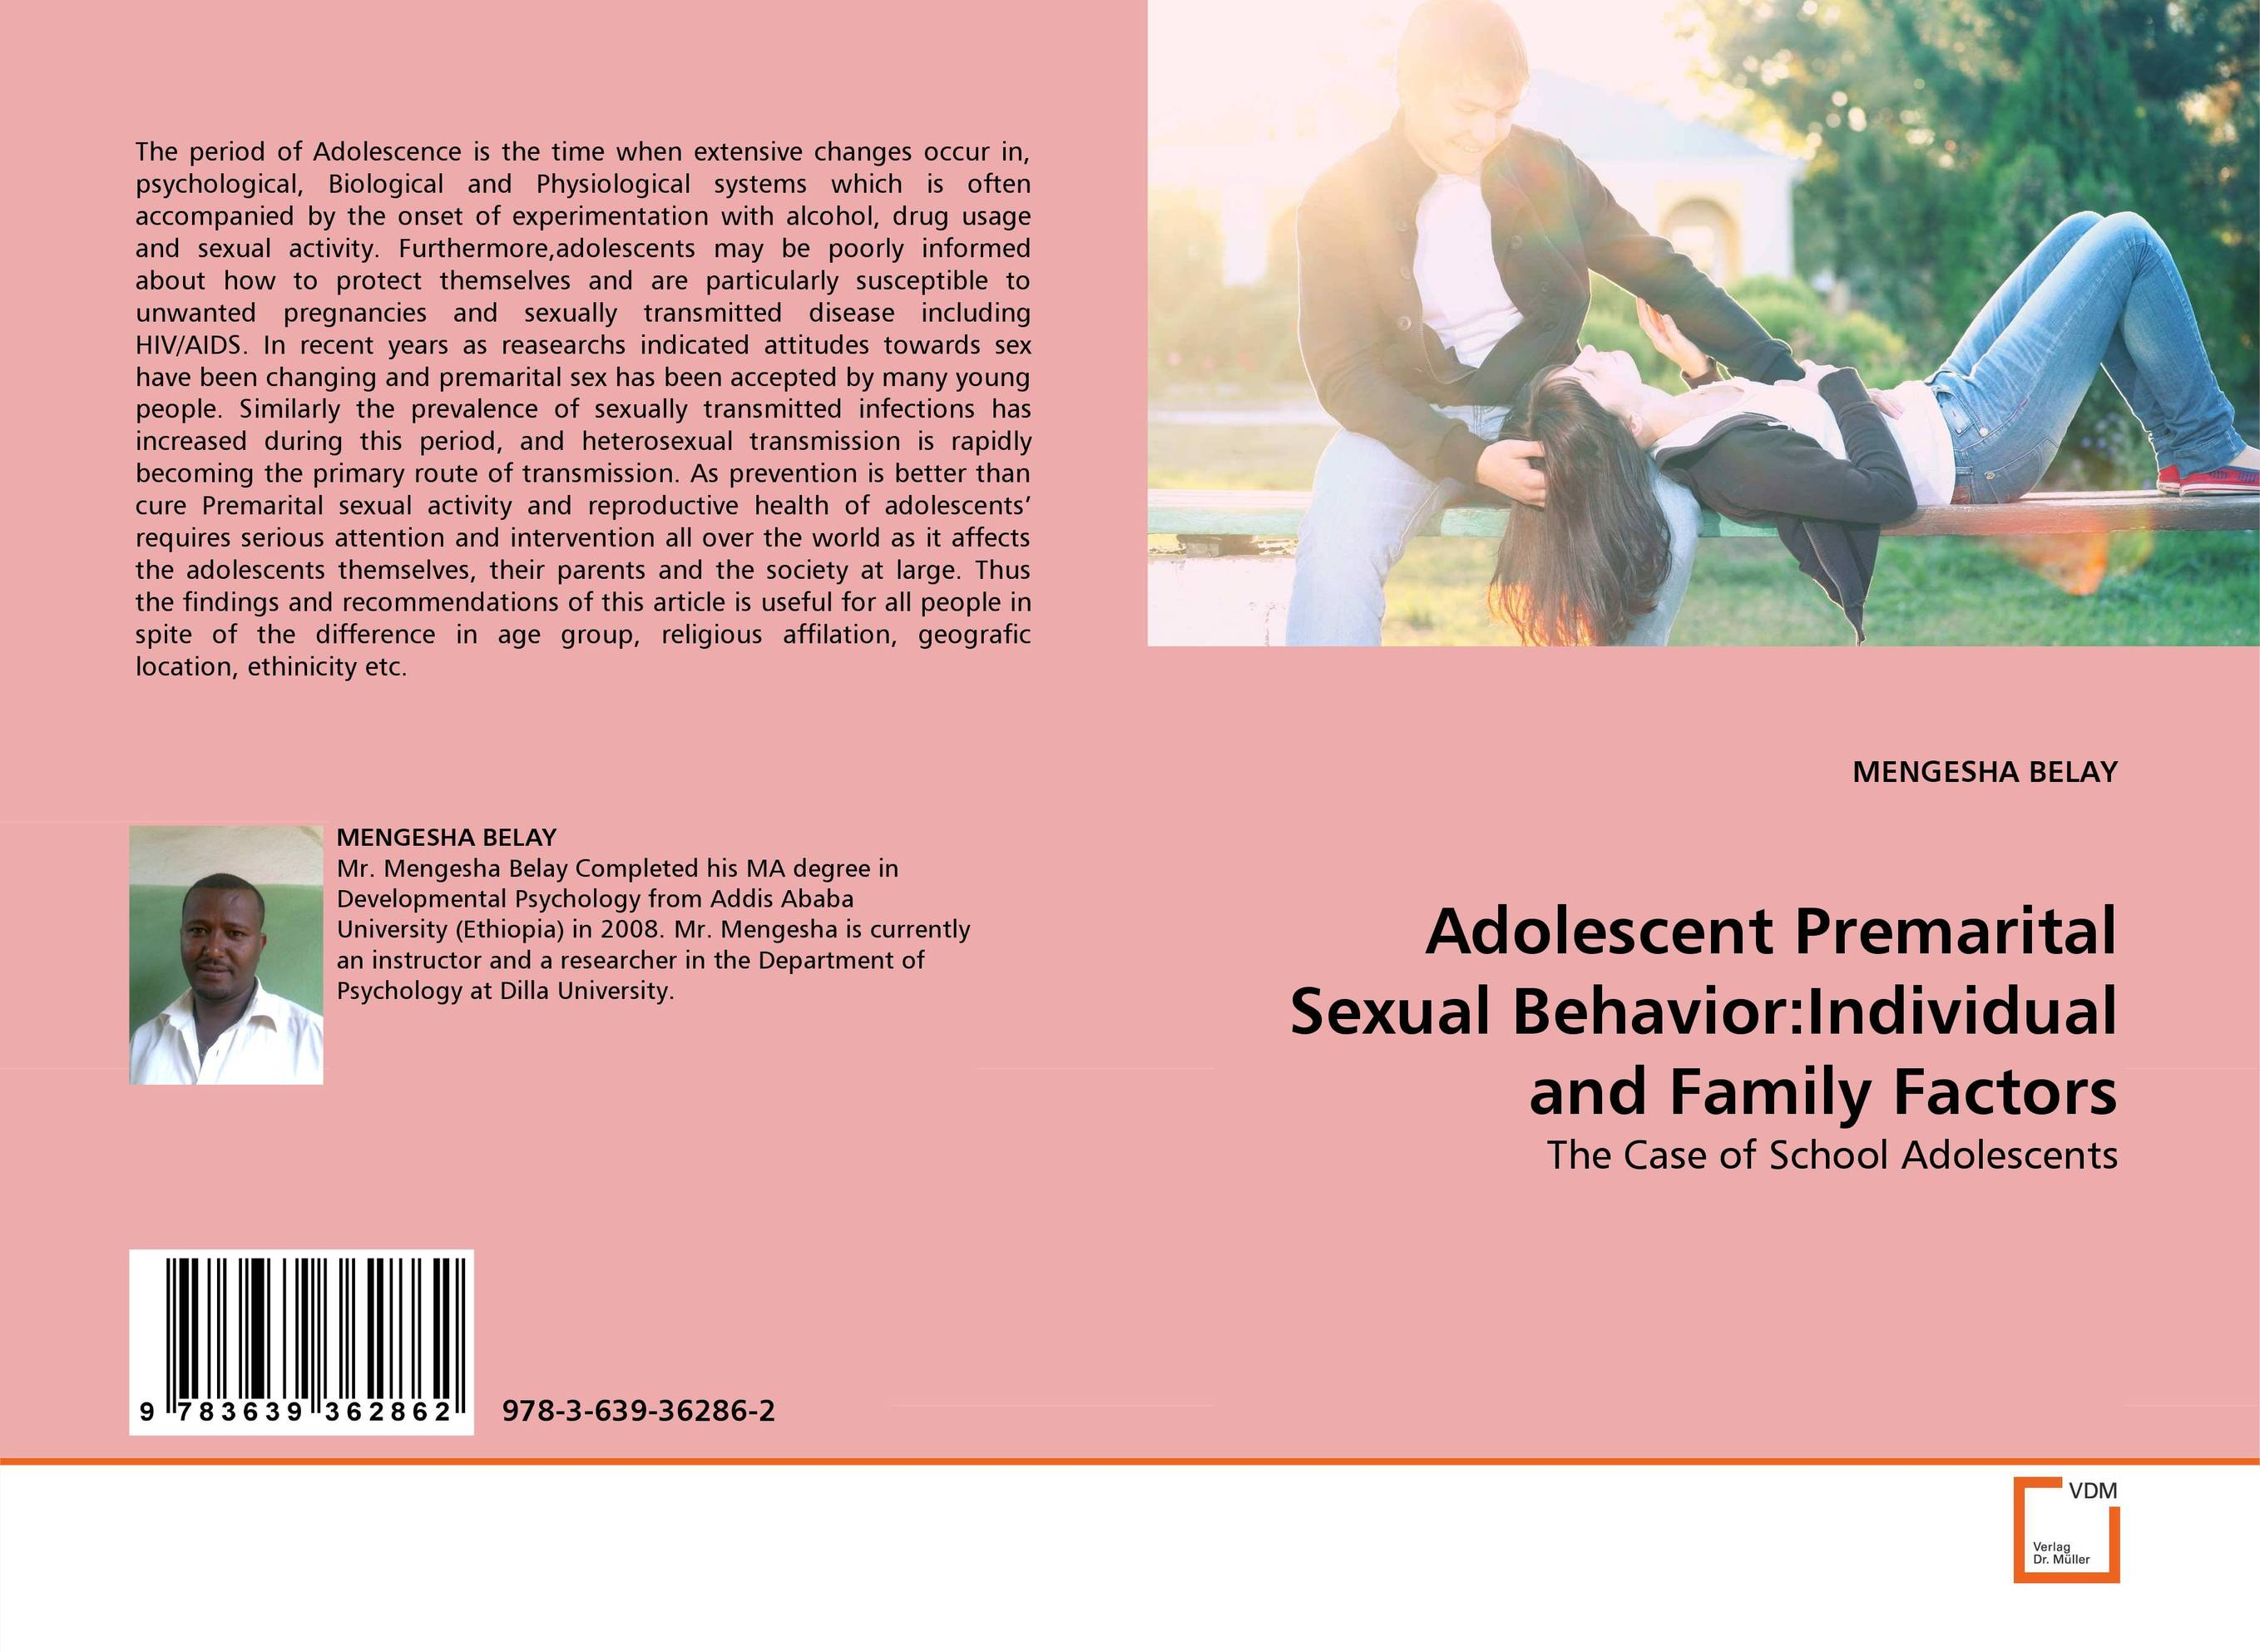 Adolescent Premarital Sexual Behavior:Individual and Family Factors